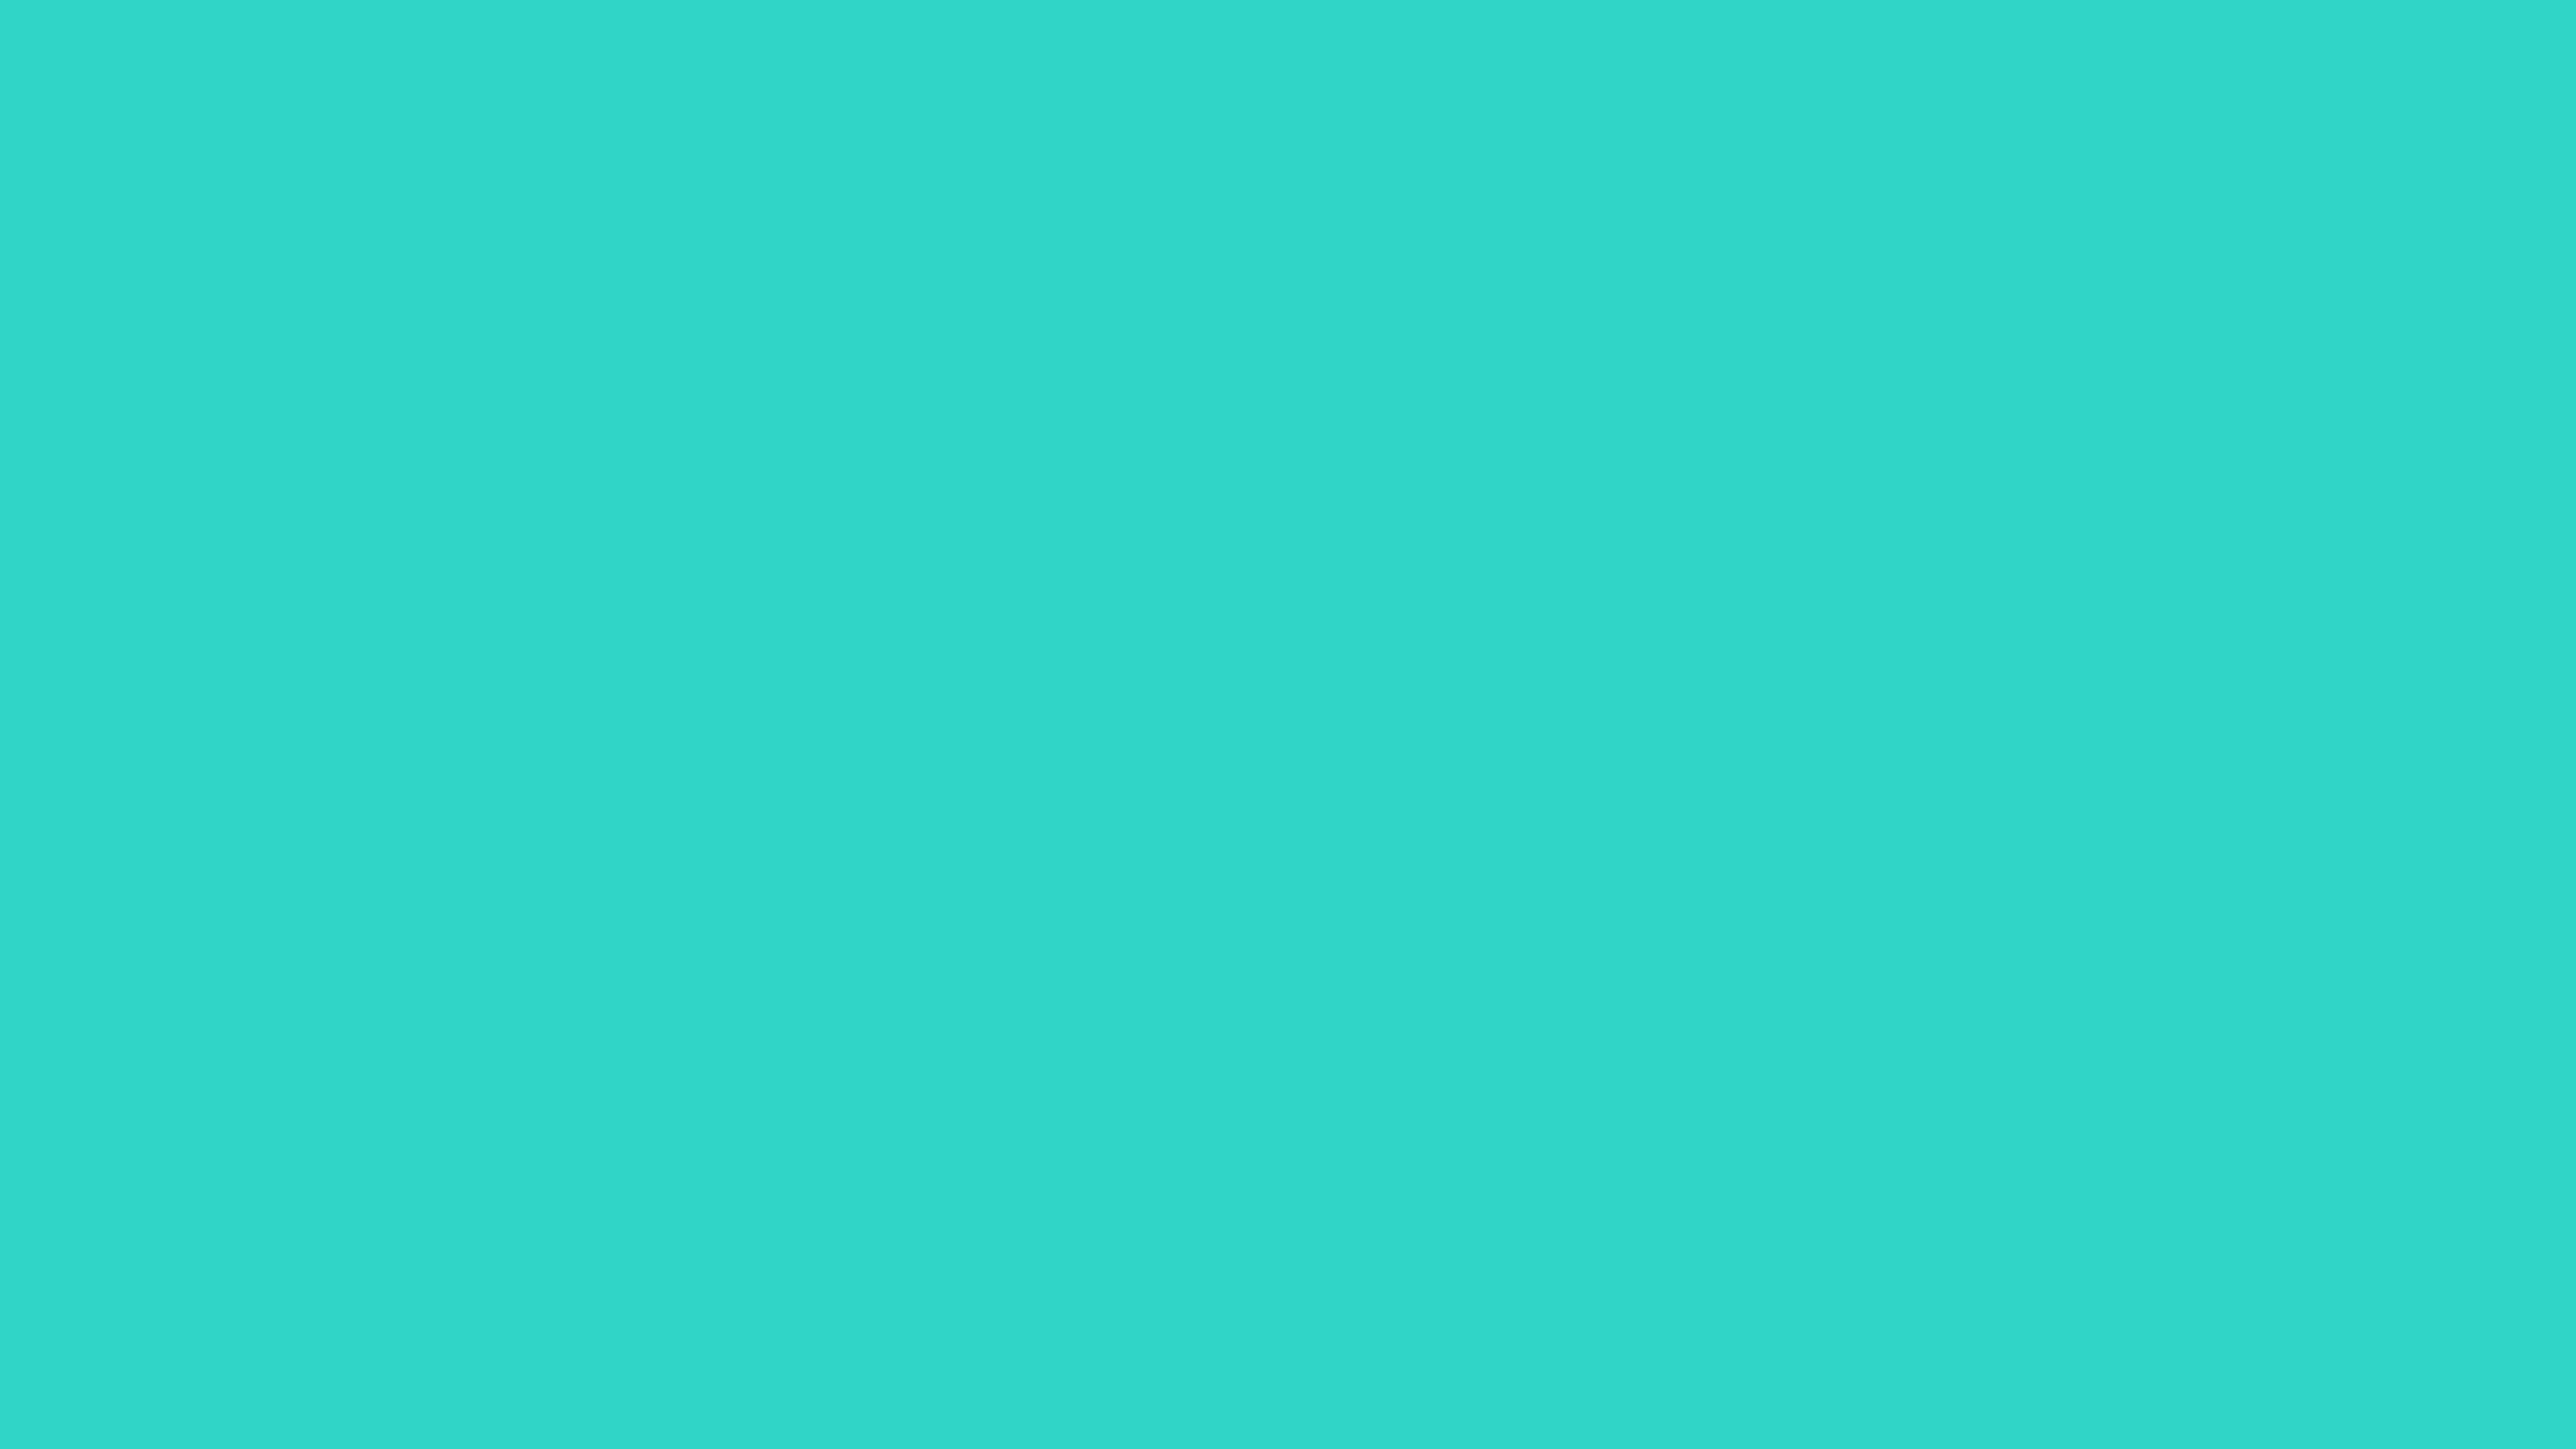 4096x2304 Turquoise Solid Color Background